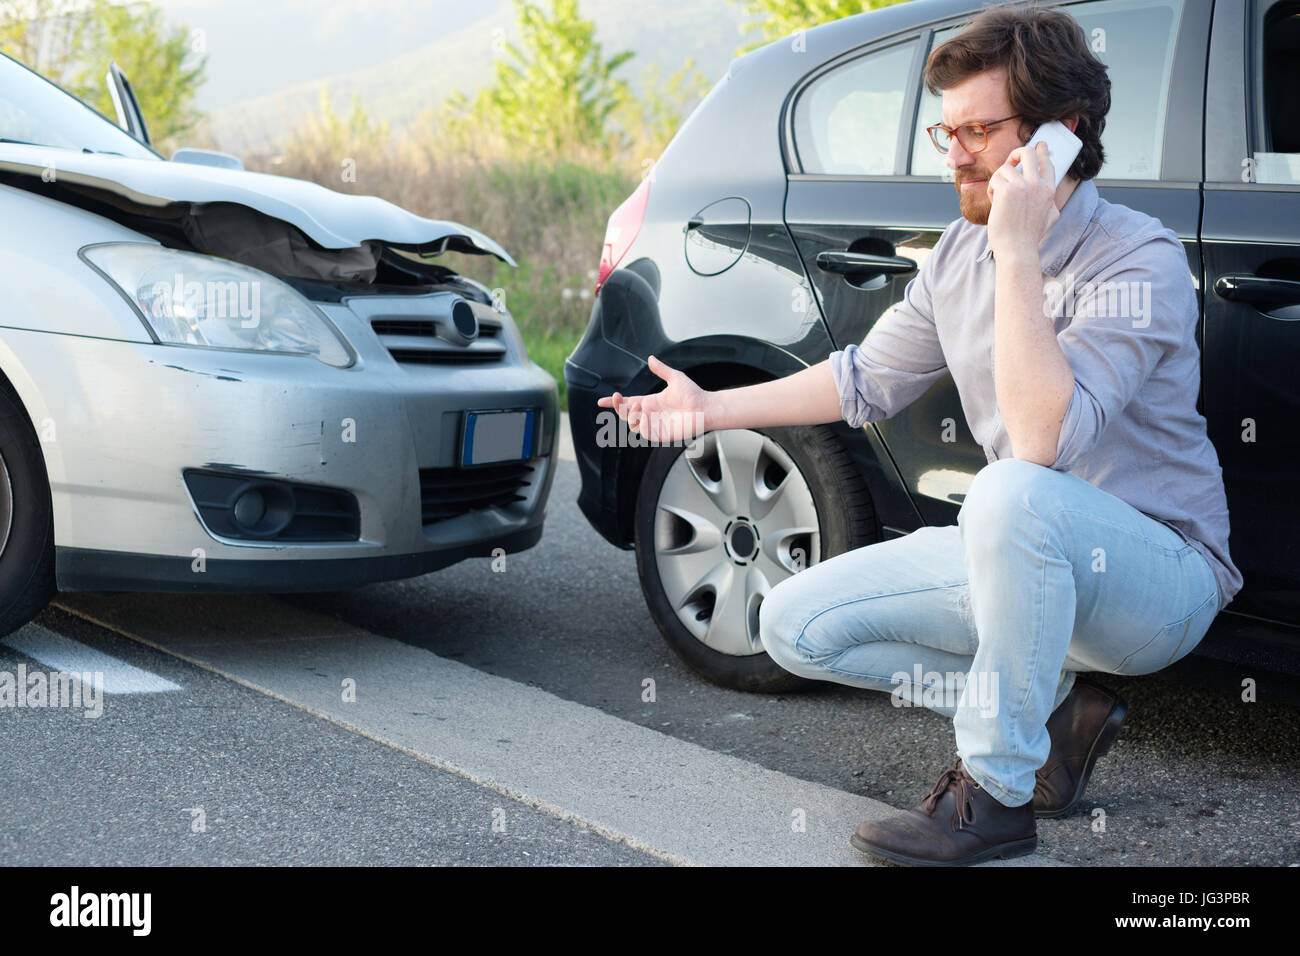 Man Calling Help After A Car Crash Accident On The Road Stock Photo